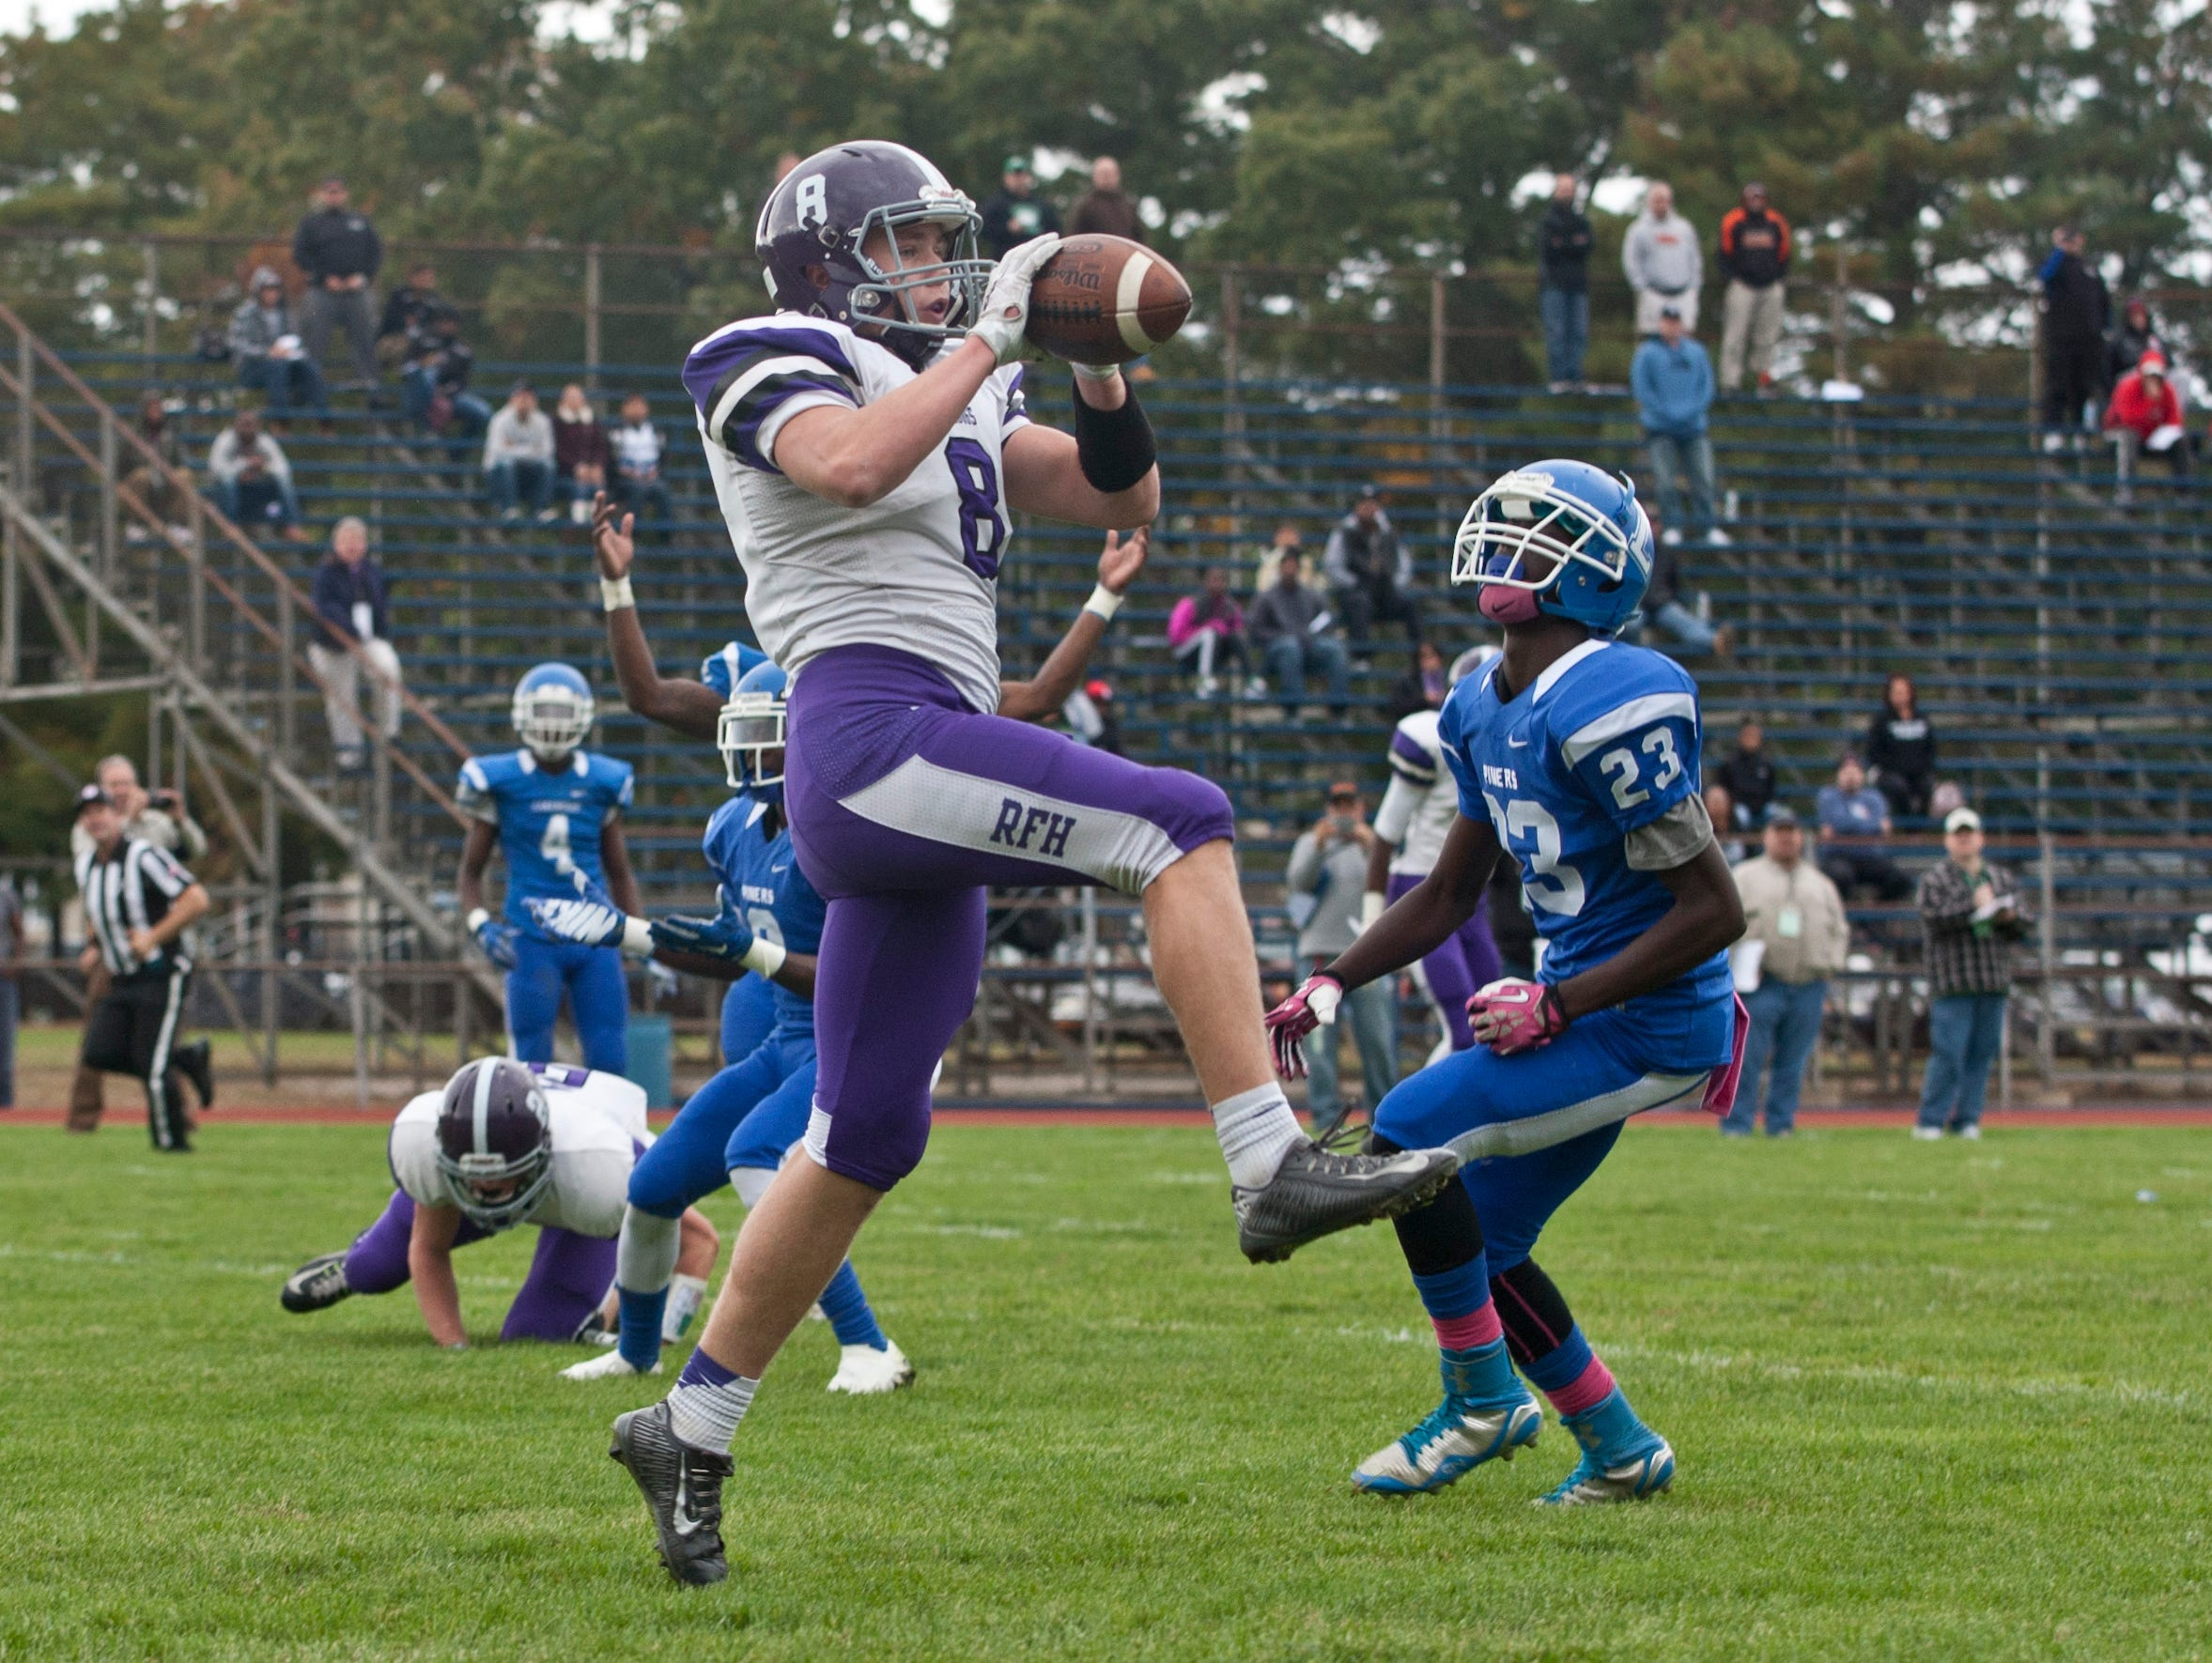 Rumson's Jack Kingdon pulls in a pass in the endzone for his team's third toudhdown during Rumson-Fair Haven Football vs Lakewood in Lakewood, NJ on October 24, 2015